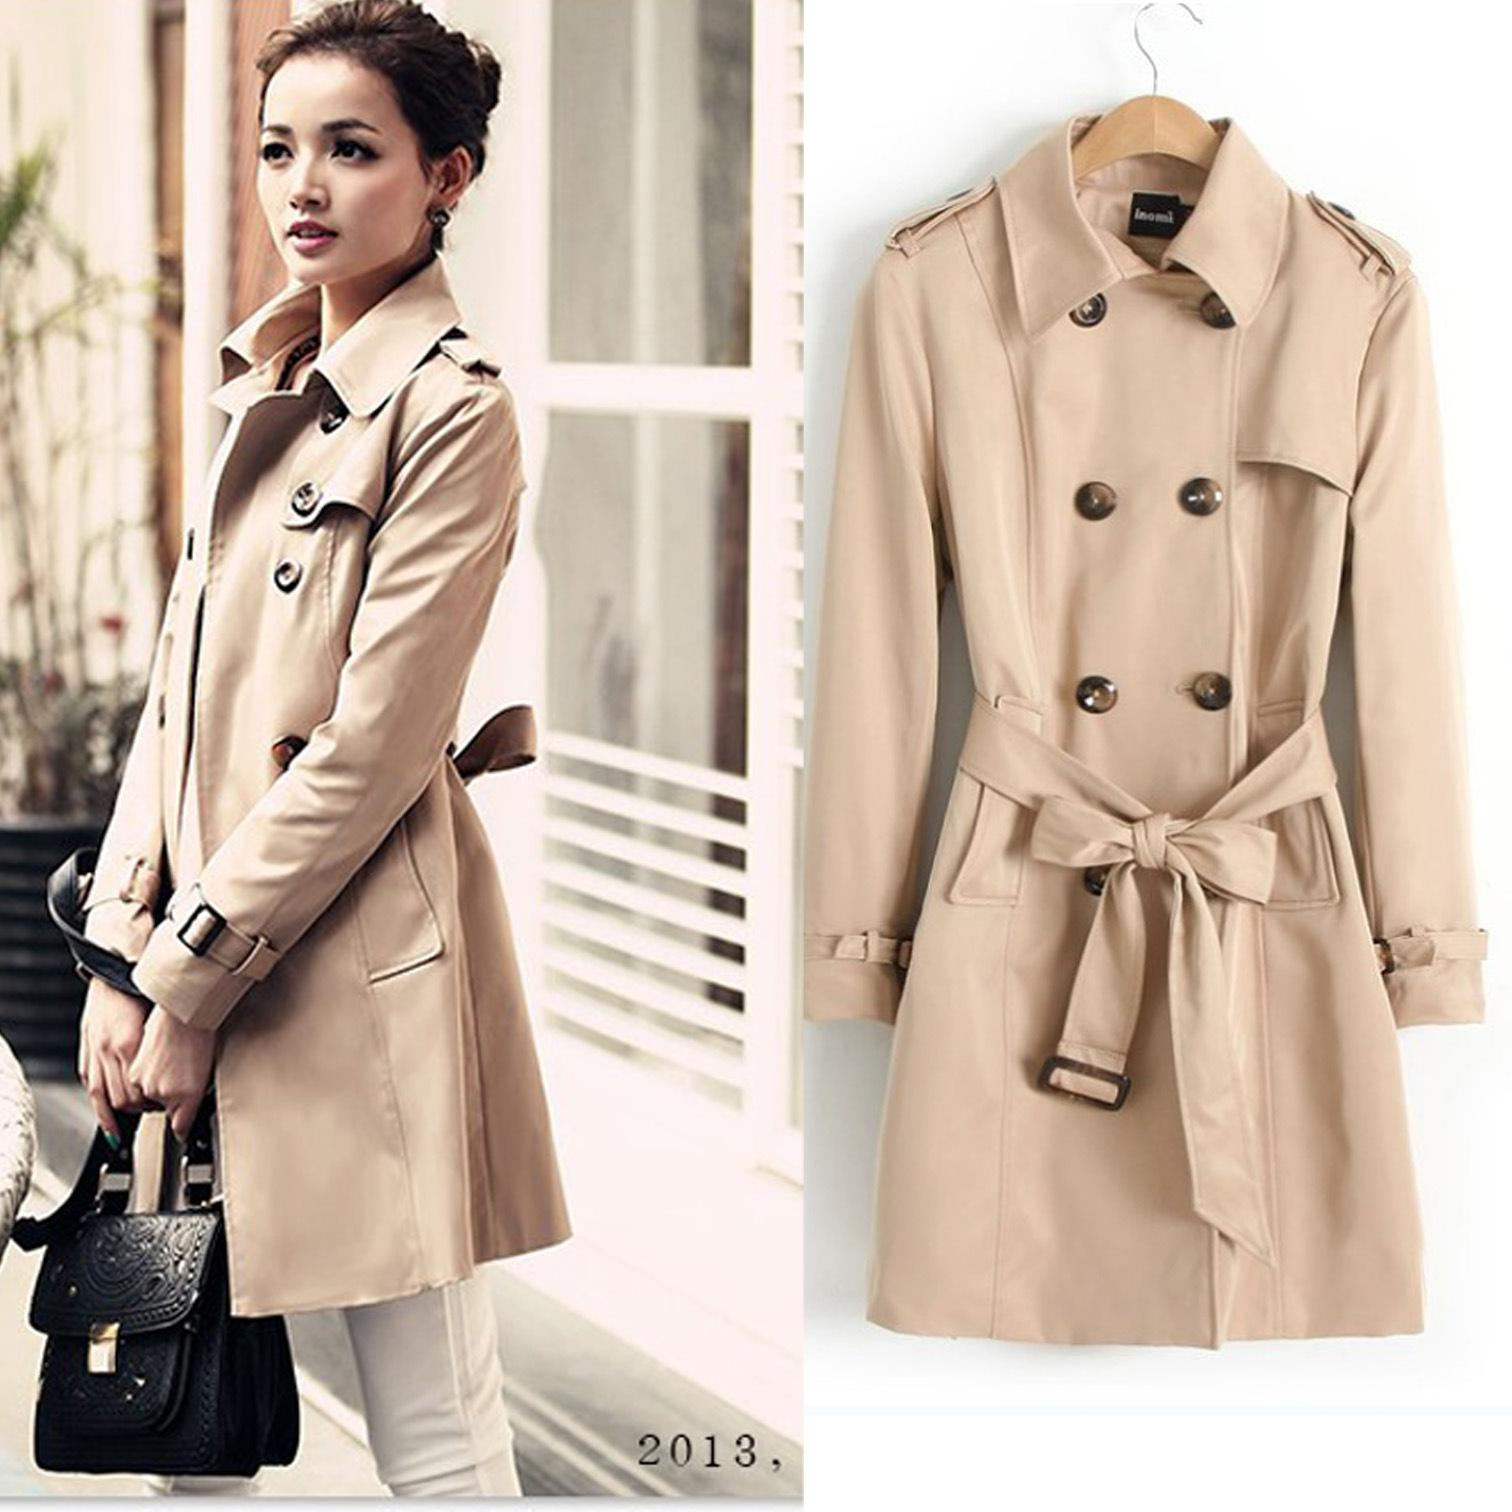 2018 Trench Coat 2013 New Women's Autumn Korean Temperament Slim ...